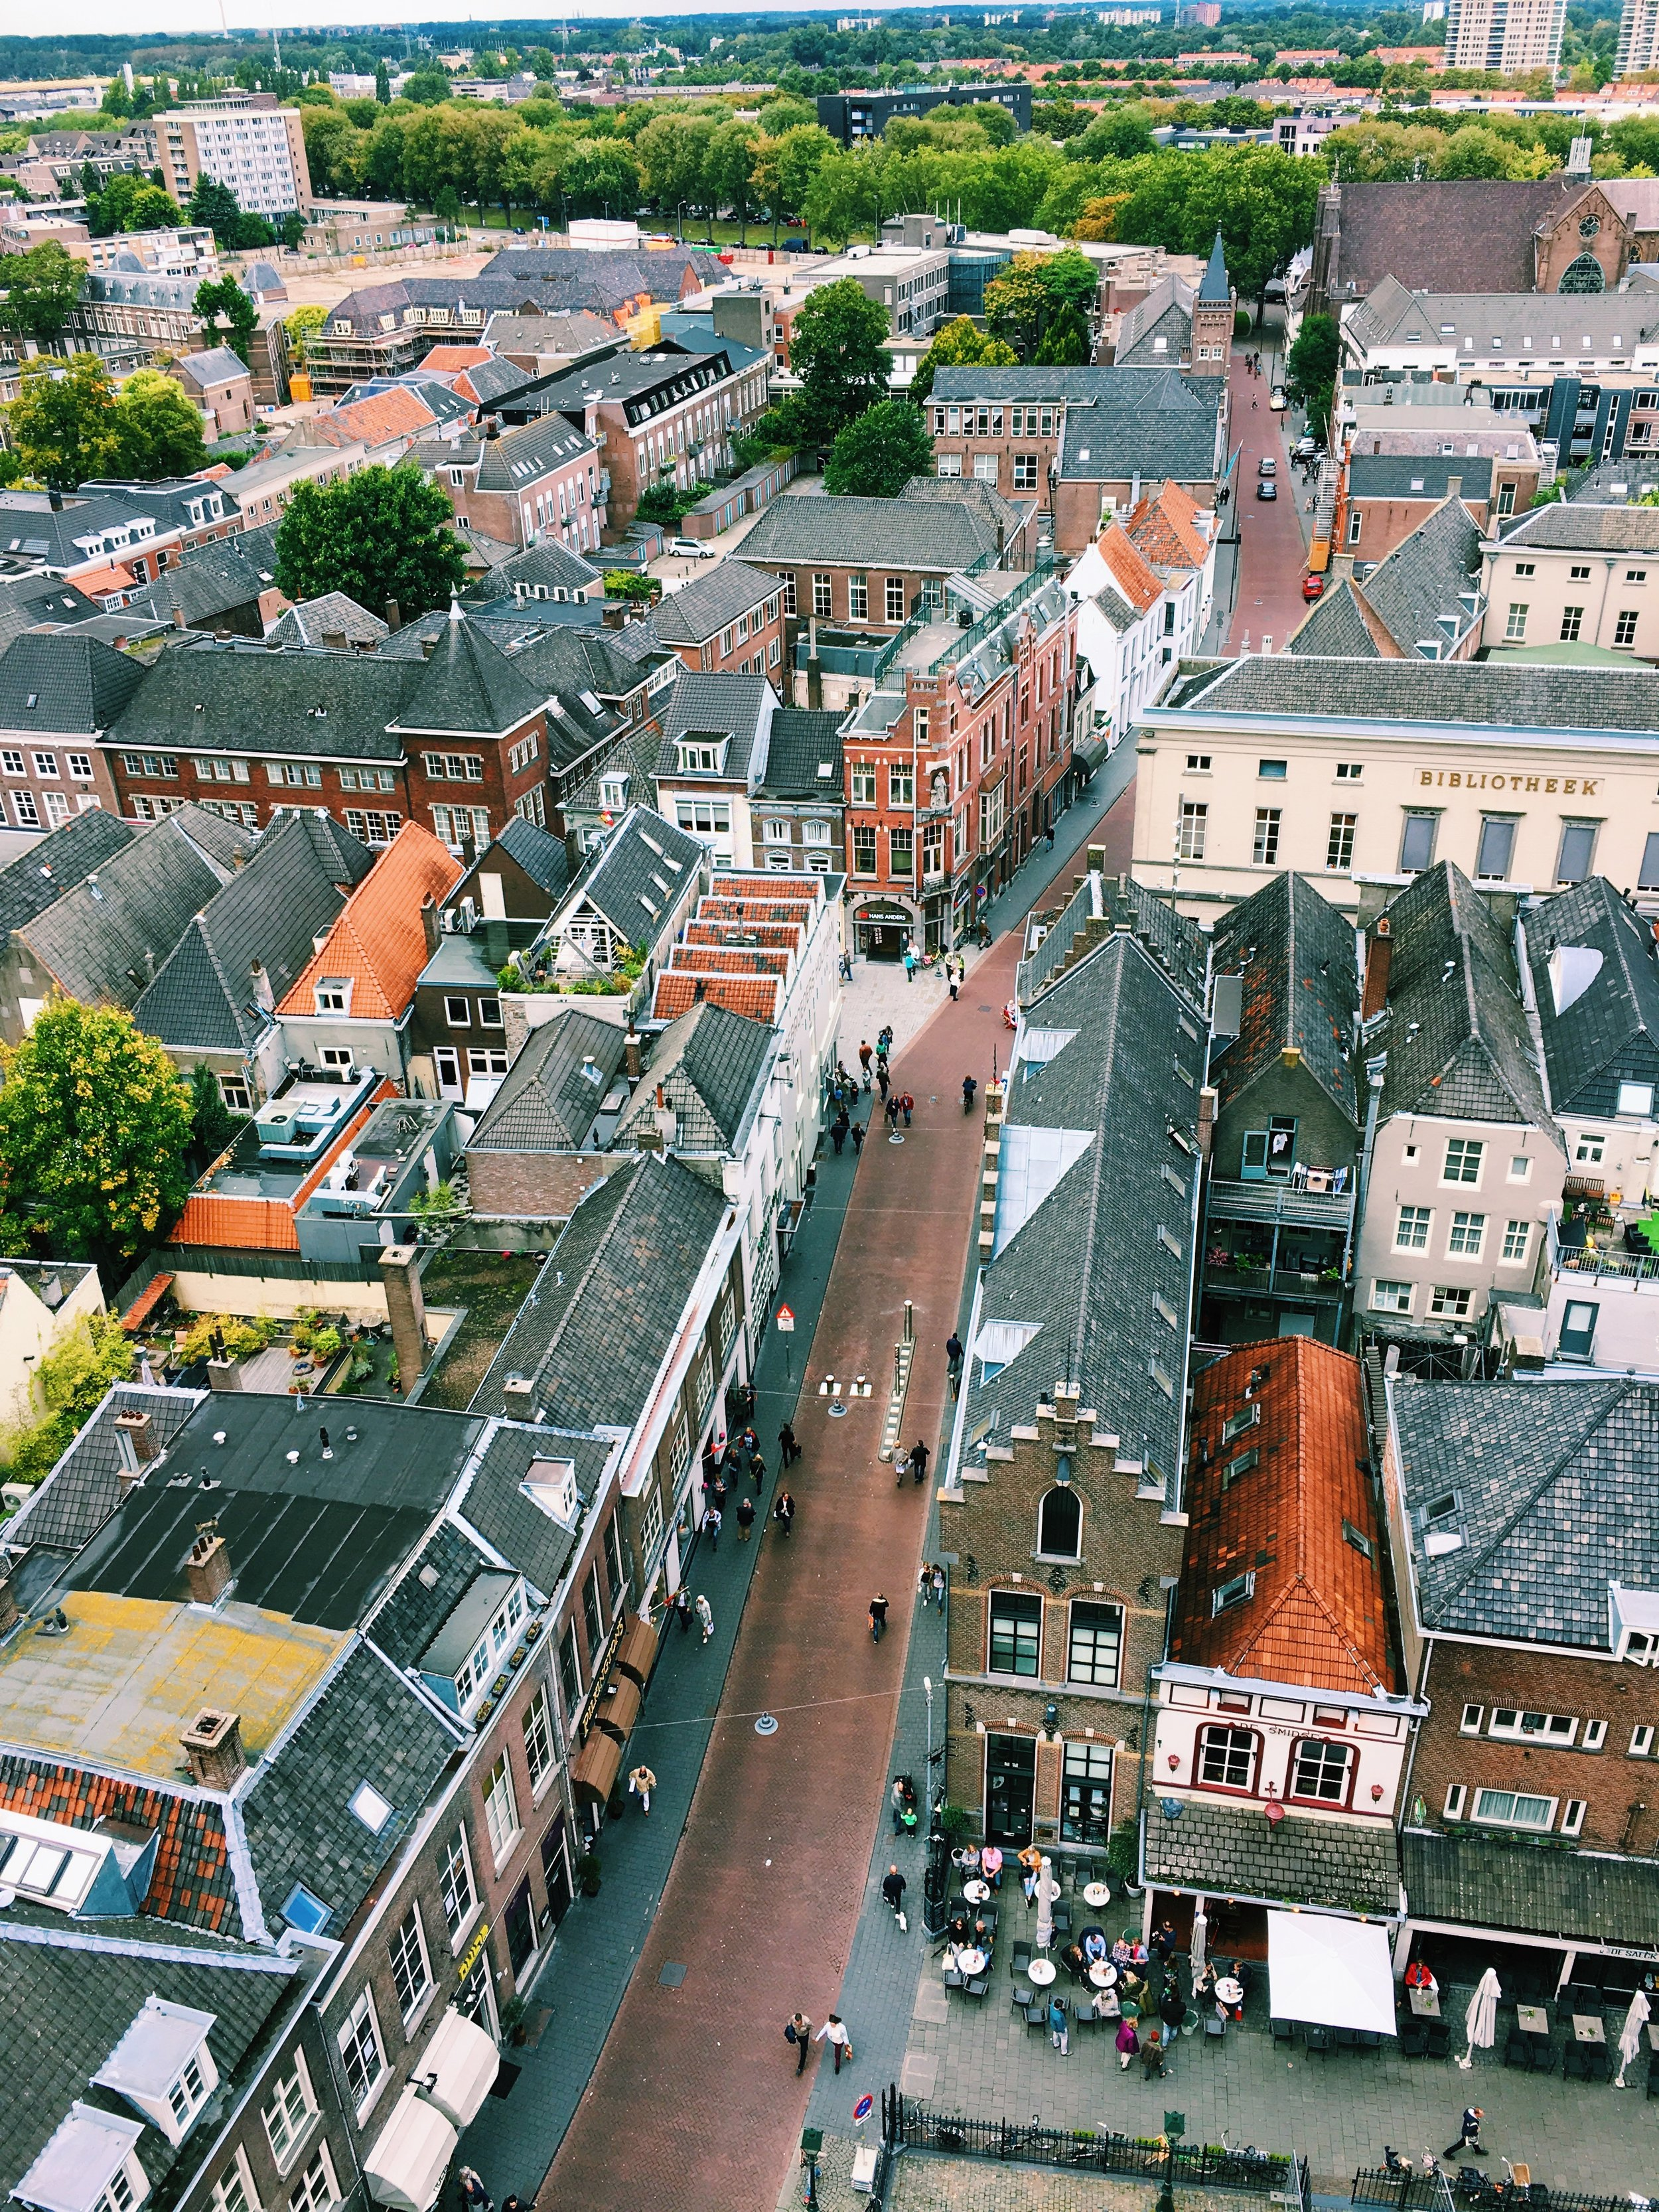 The view from atop Sint Jan in Den Bosch